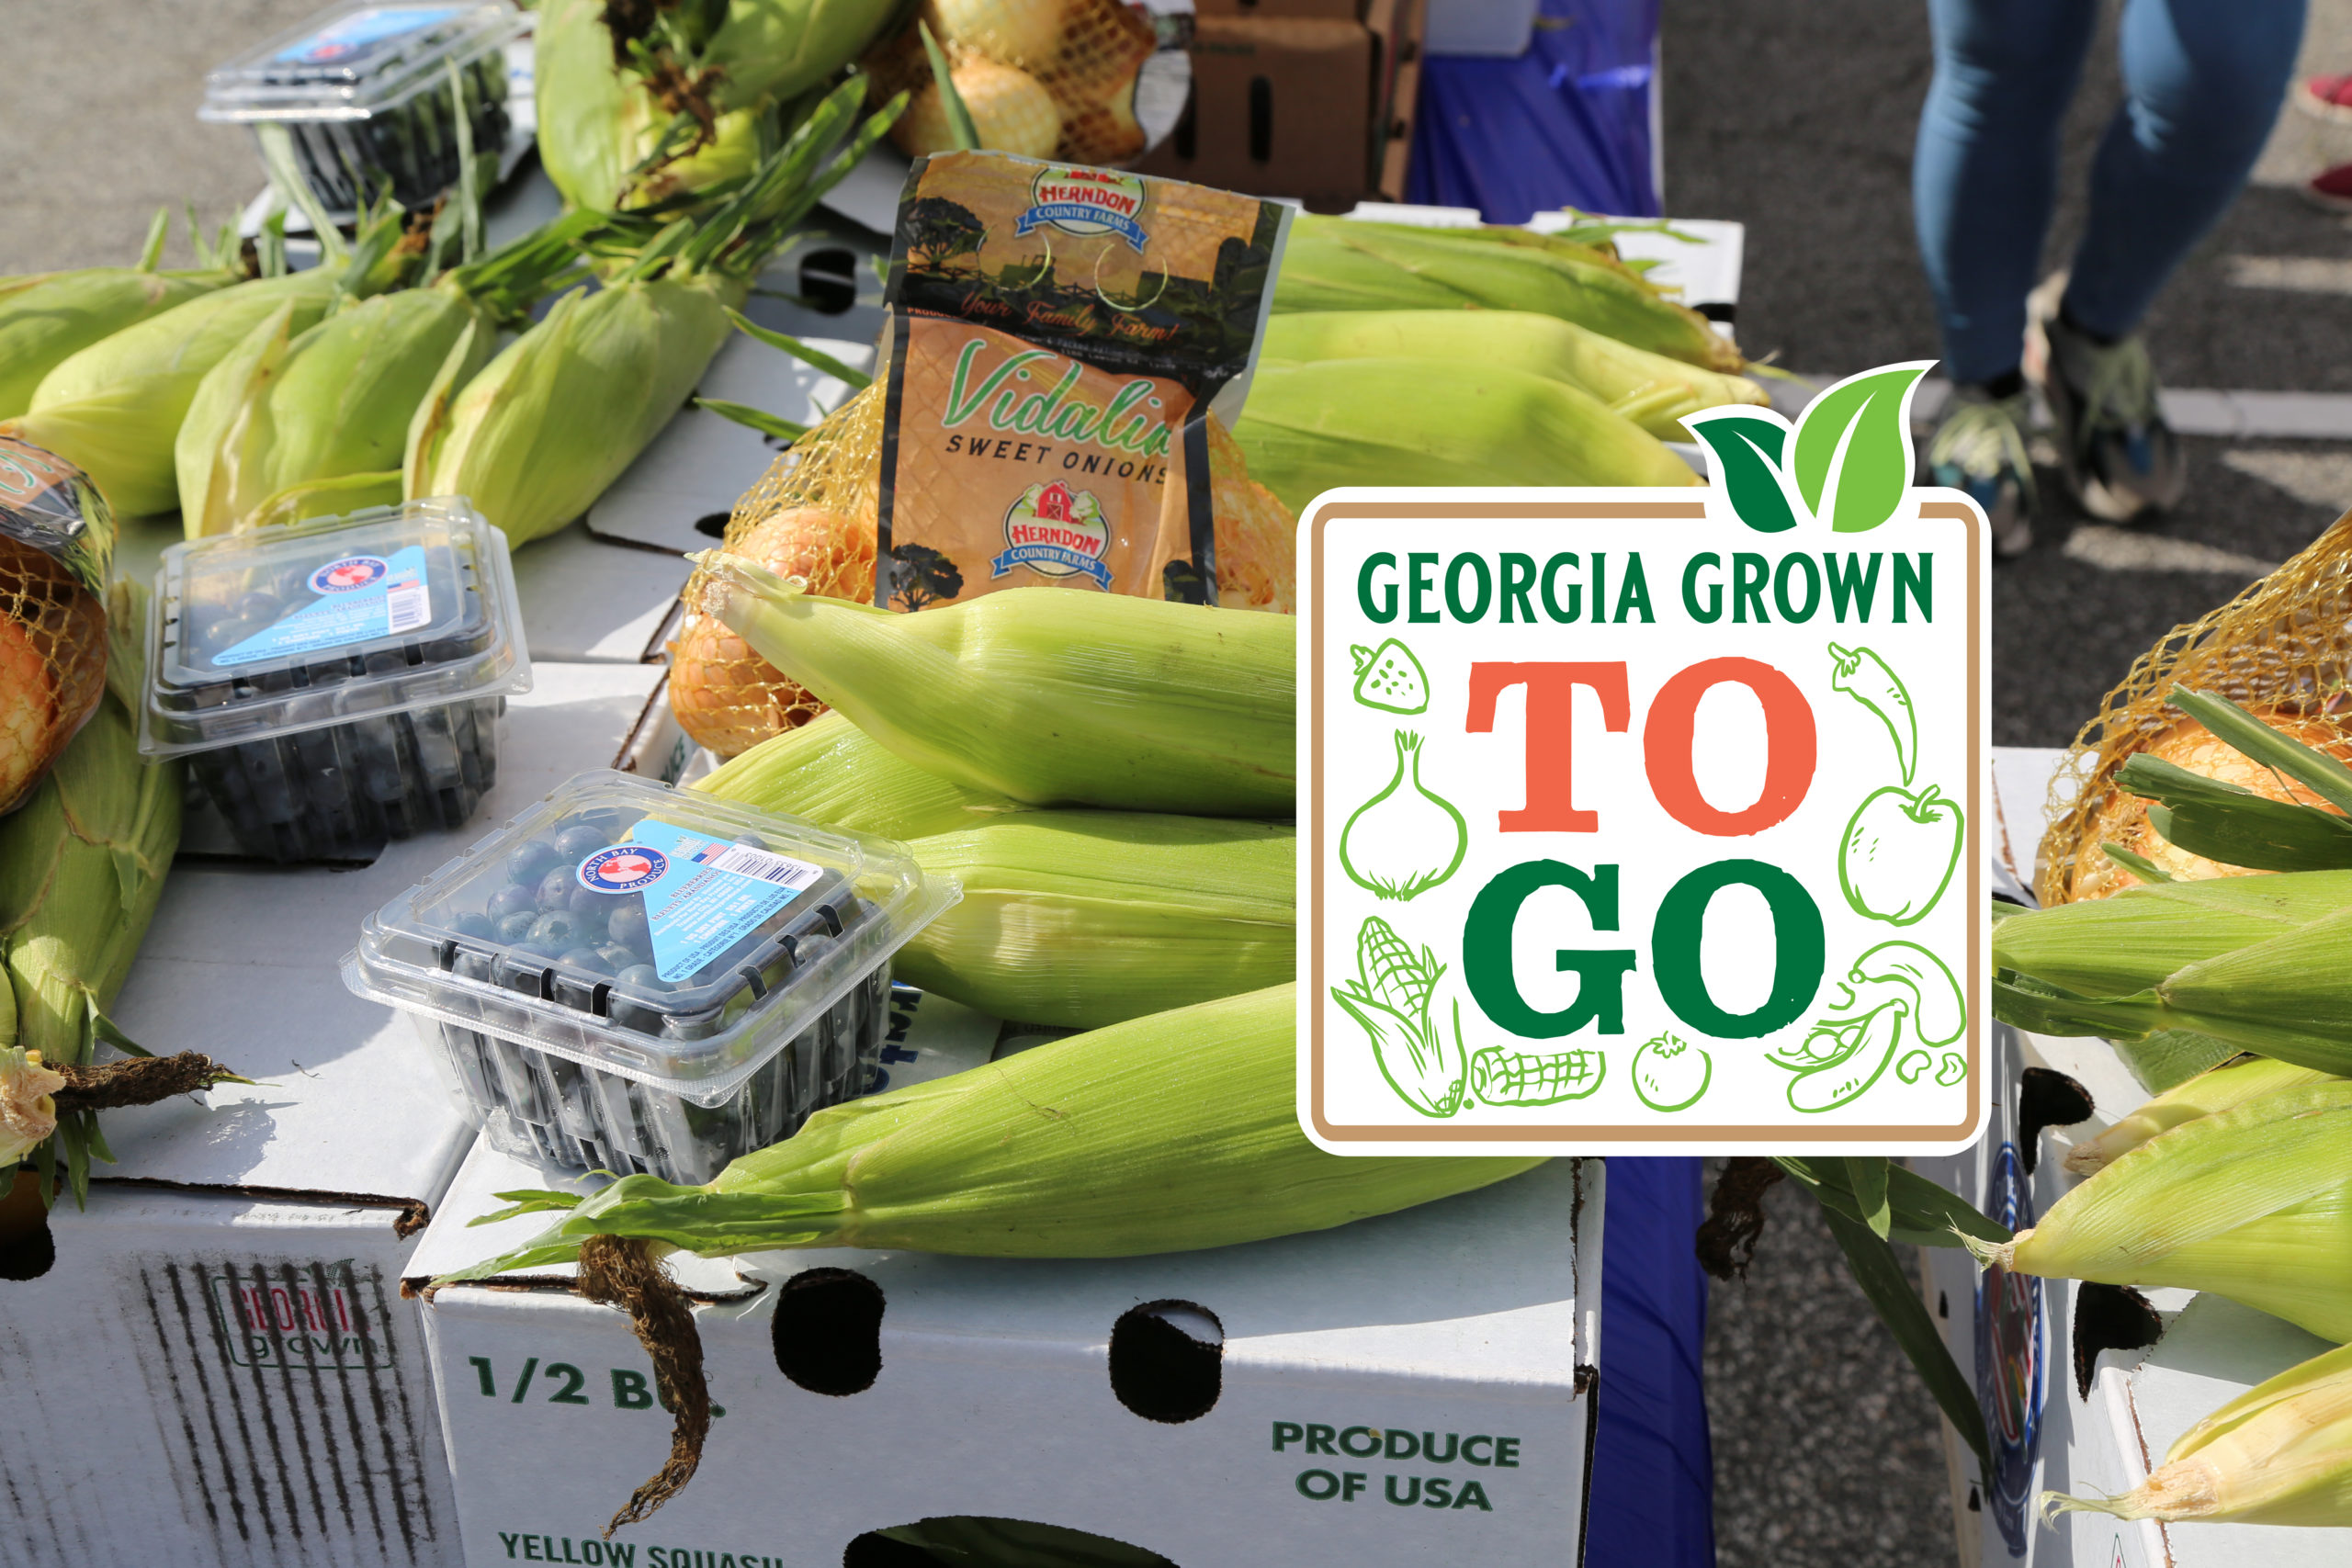 Georgia Grown To Go Box